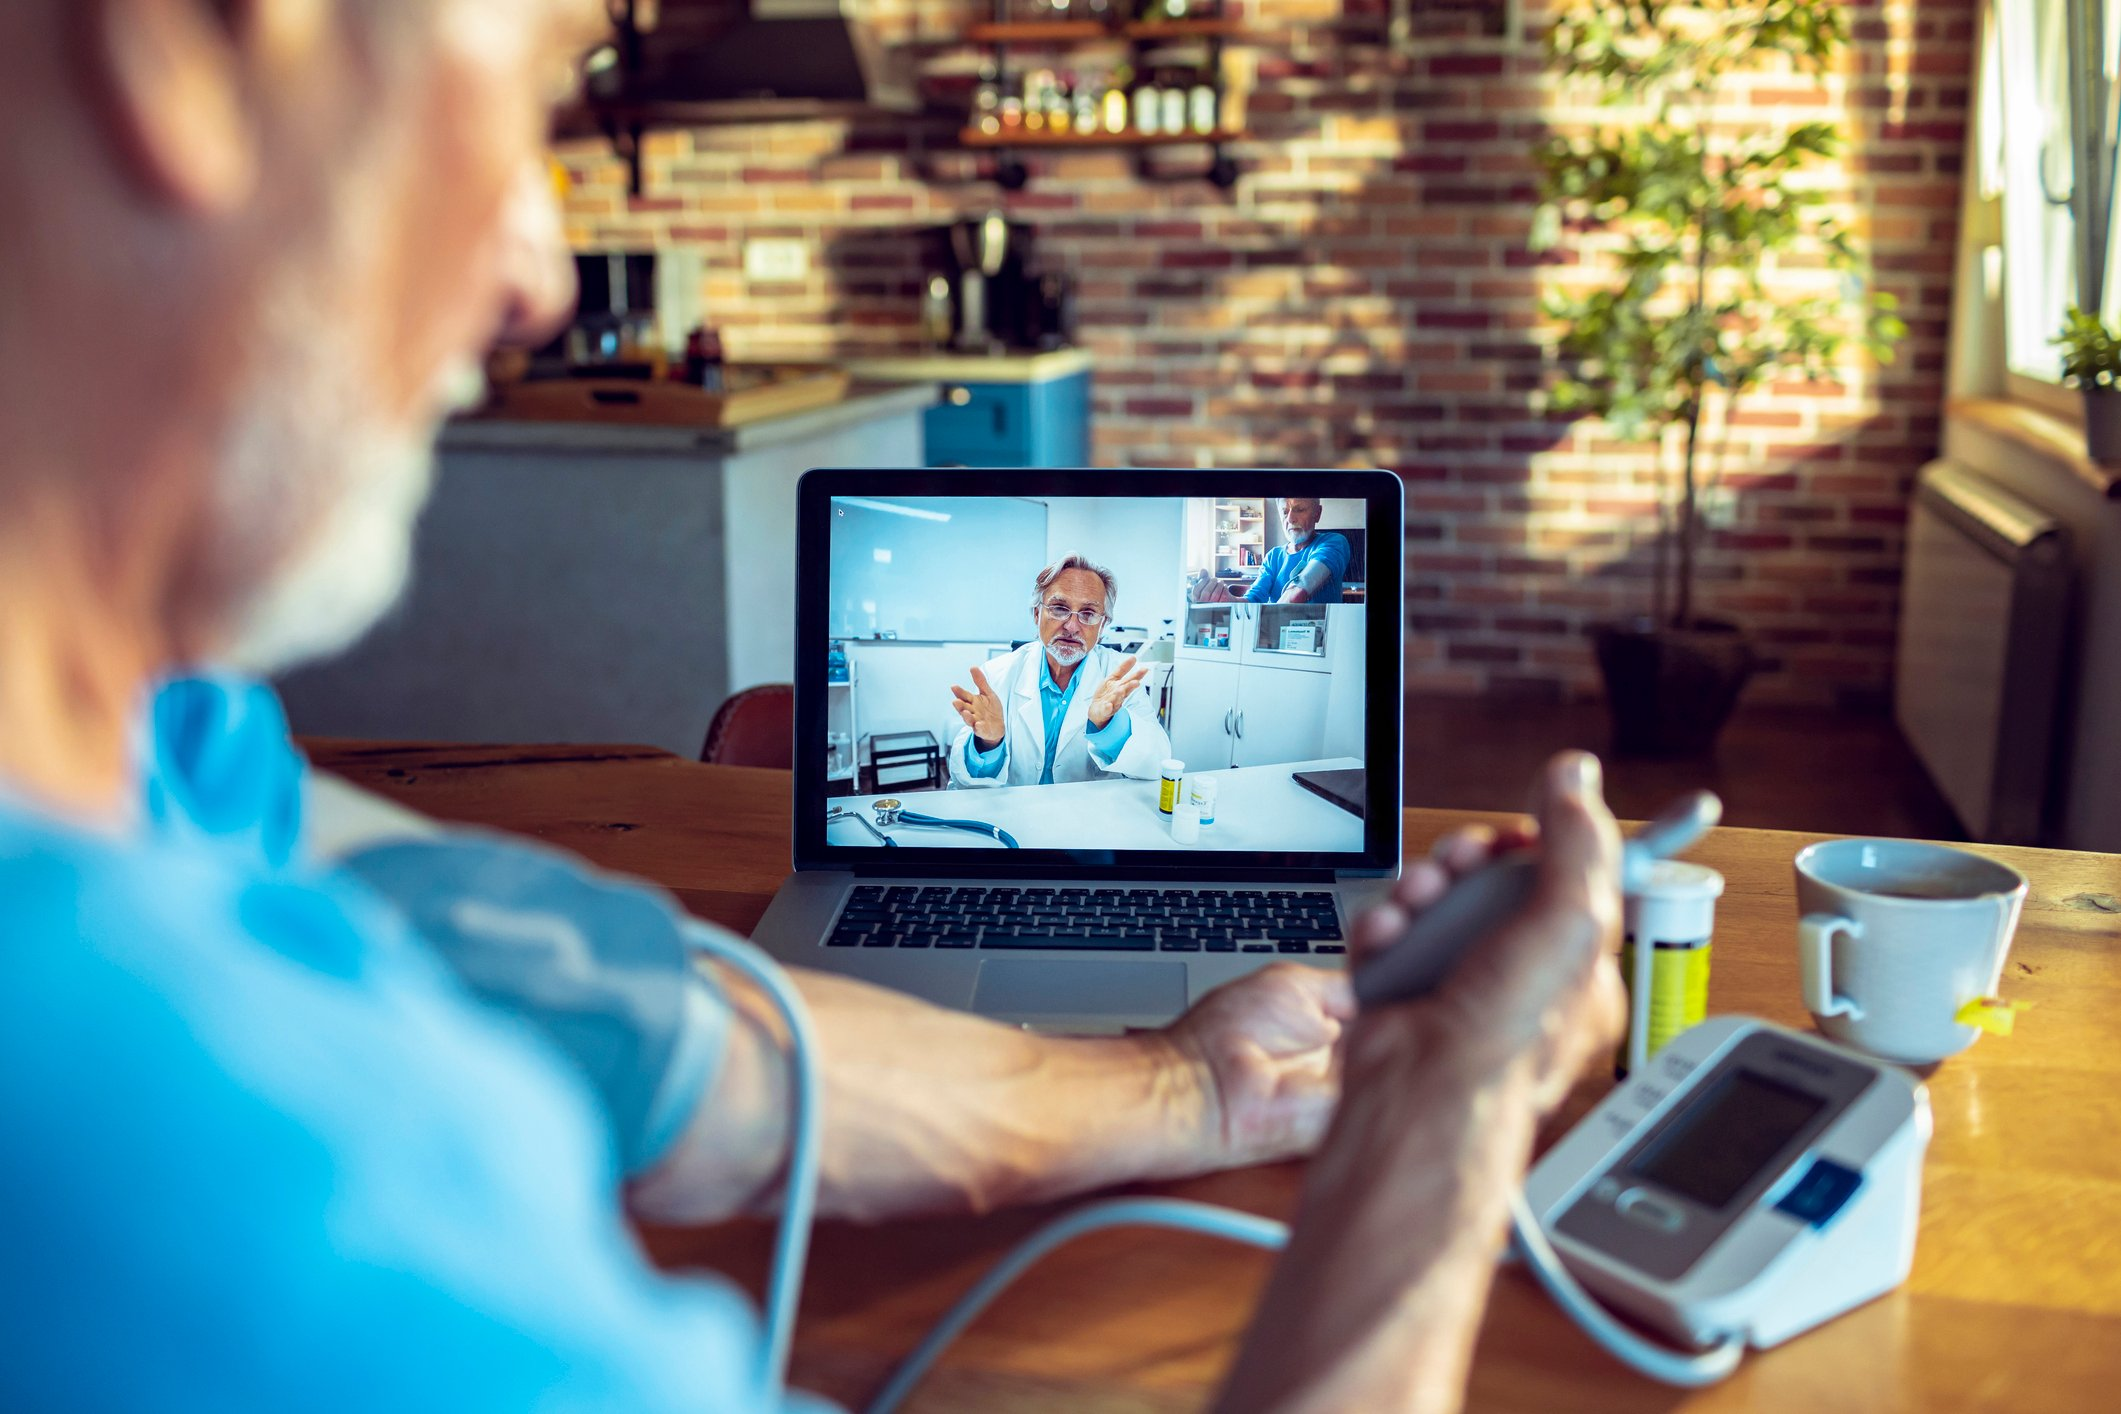 Survey: About 1 in 7 people received low-severity care through telehealth instead of going to the emergency room